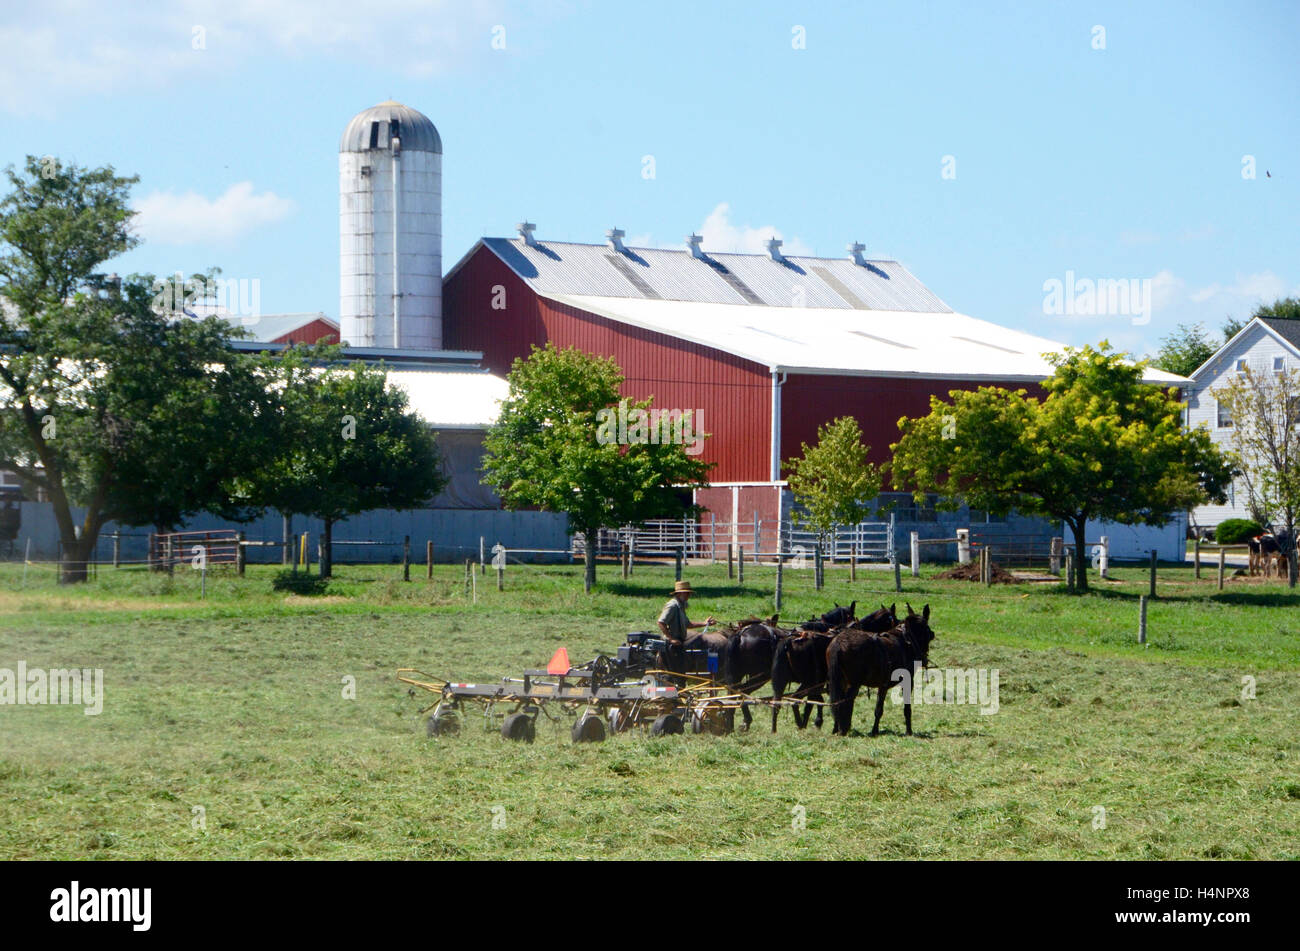 An Amish farmer working with horses in Lancaster County